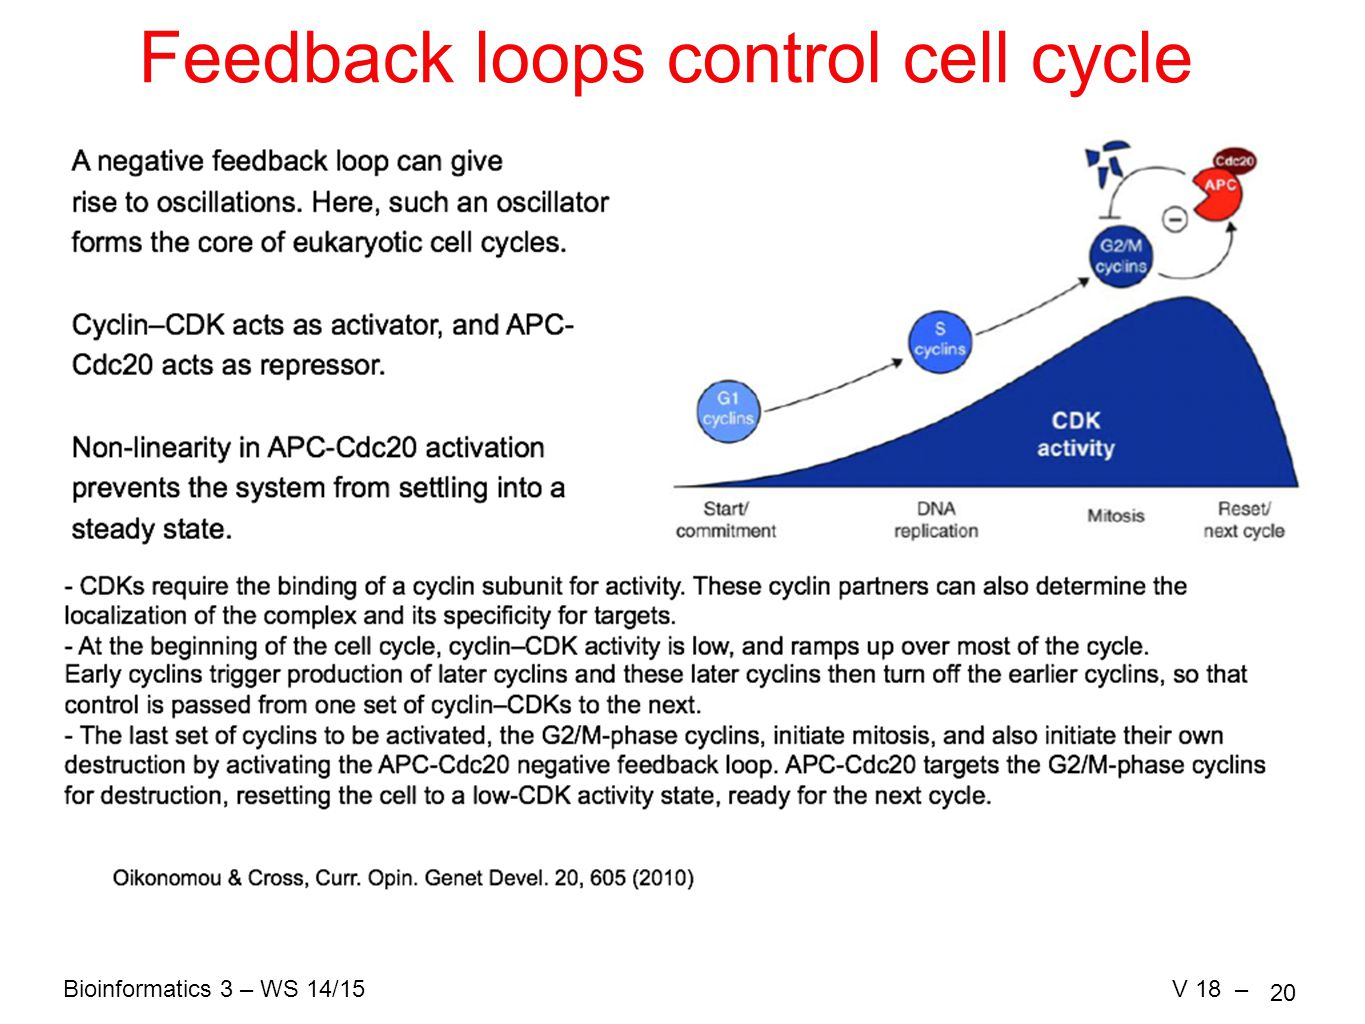 Bioinformatics 3 – WS 14/15V 18 – 20 Feedback loops control cell cycle